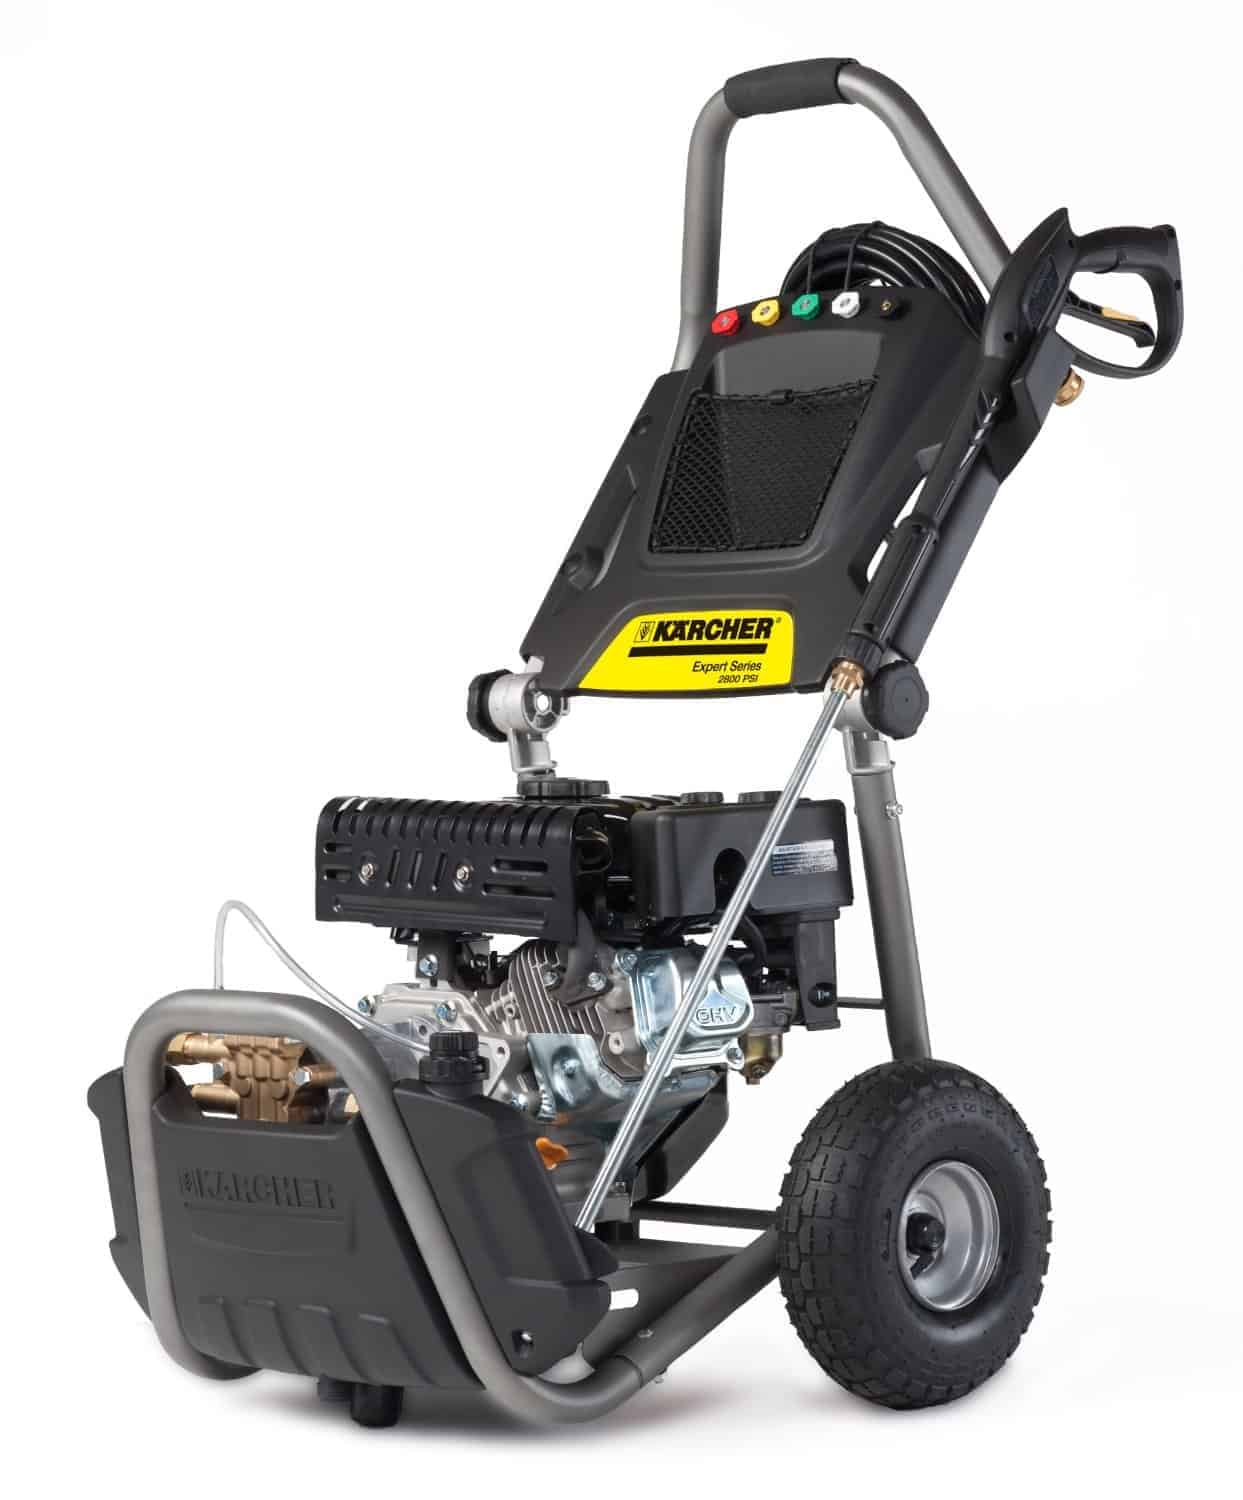 Karcher G 2800 XC Expert Series 2800PSI 2.5GPM Gas Pressure Washer review